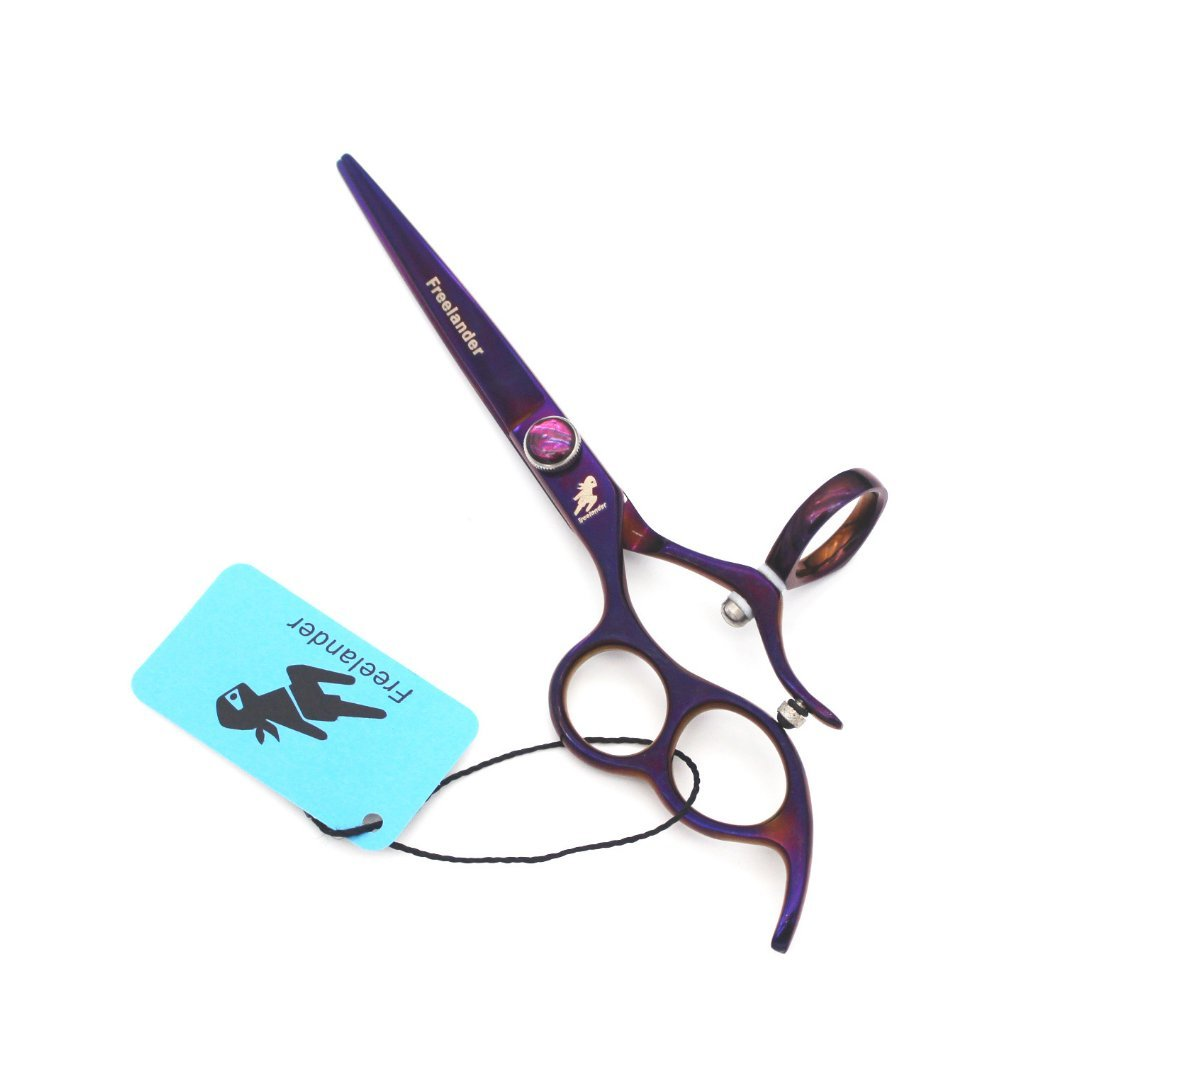 Professional Left Handed hair Cutting Scissors 360 Degree Rotation Fly Barber hair cutting scissors,5.5 inch length Japanese 440C Stainless